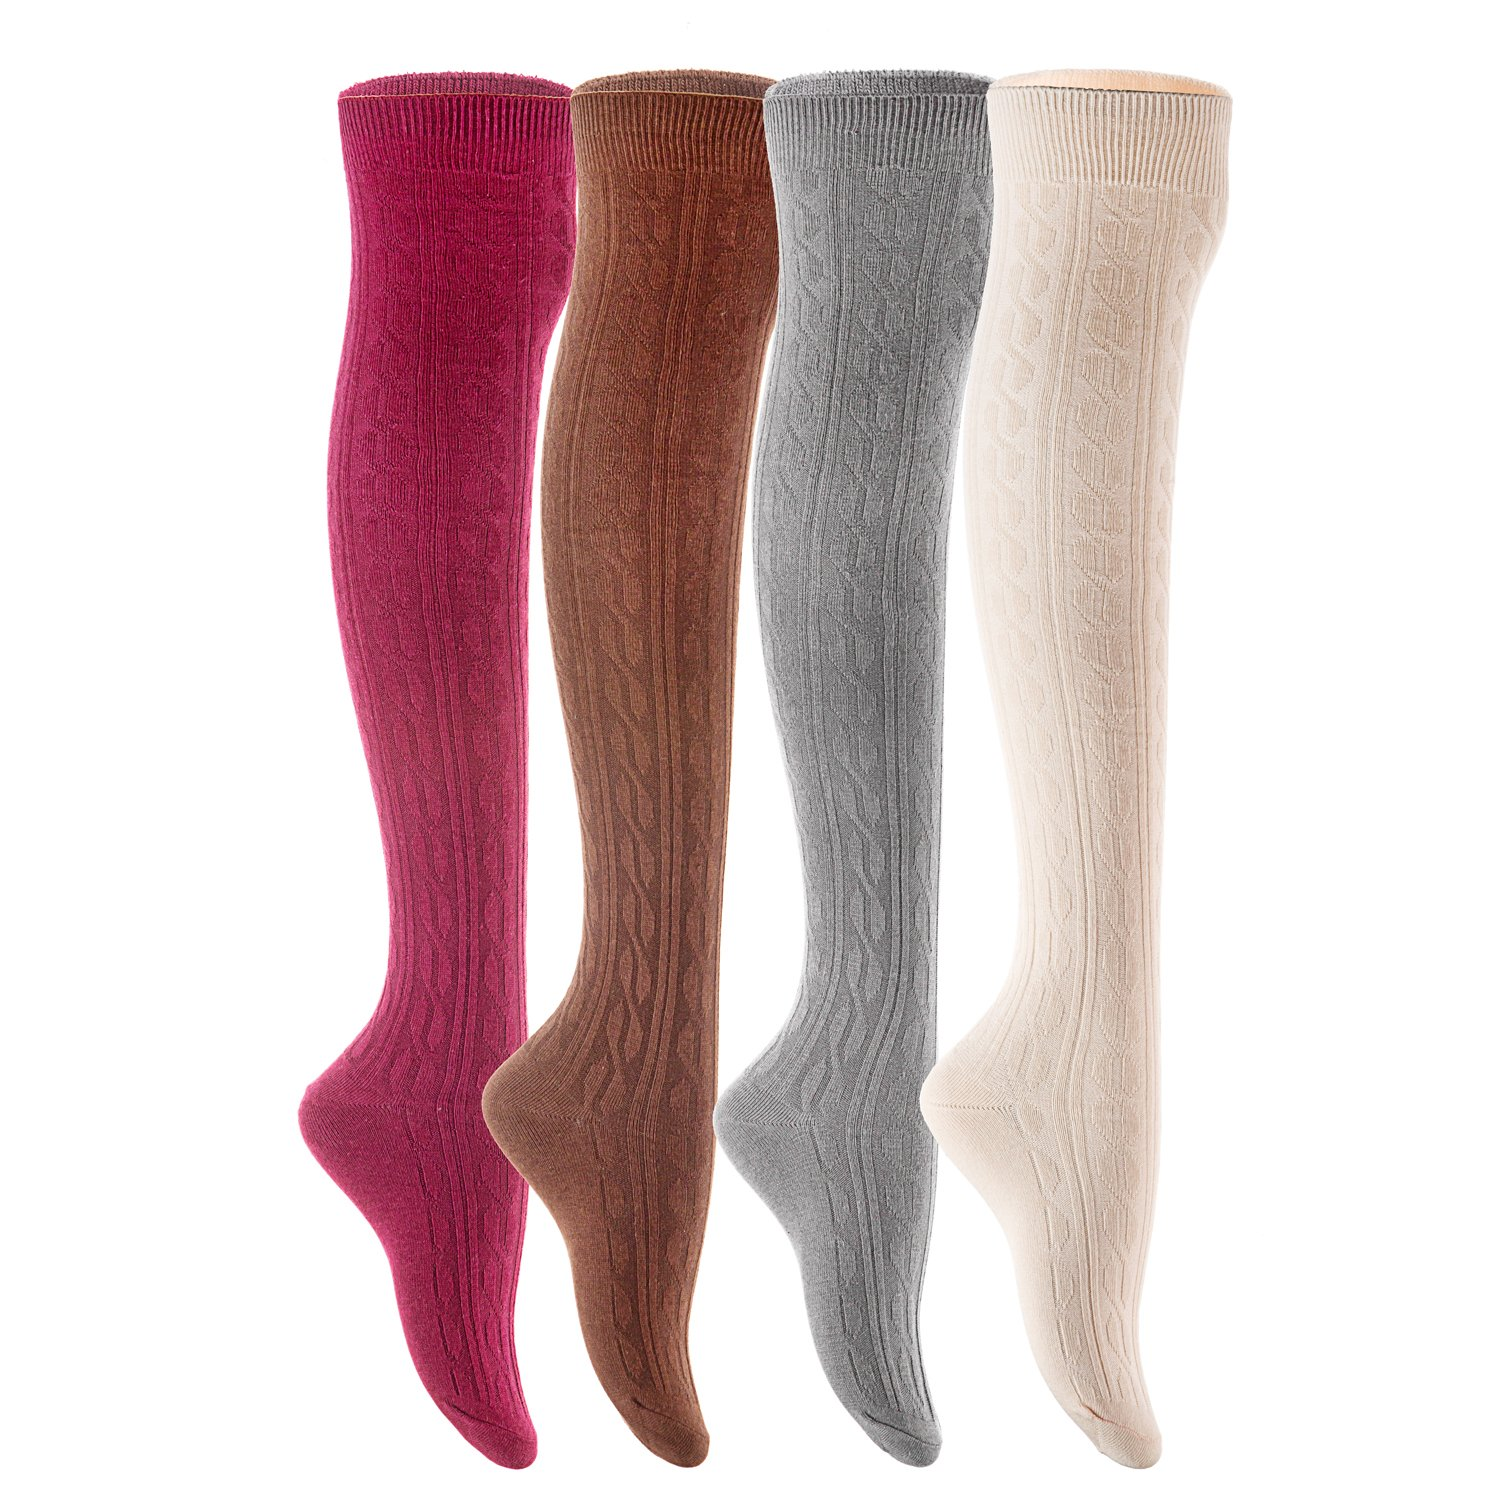 Lovely Annie Women's 4 Pairs Over Knee High Cotton Socks JMYP1024 Size 6-9 Style 05 (Coffee,Beige,Wine, Dark Grey)